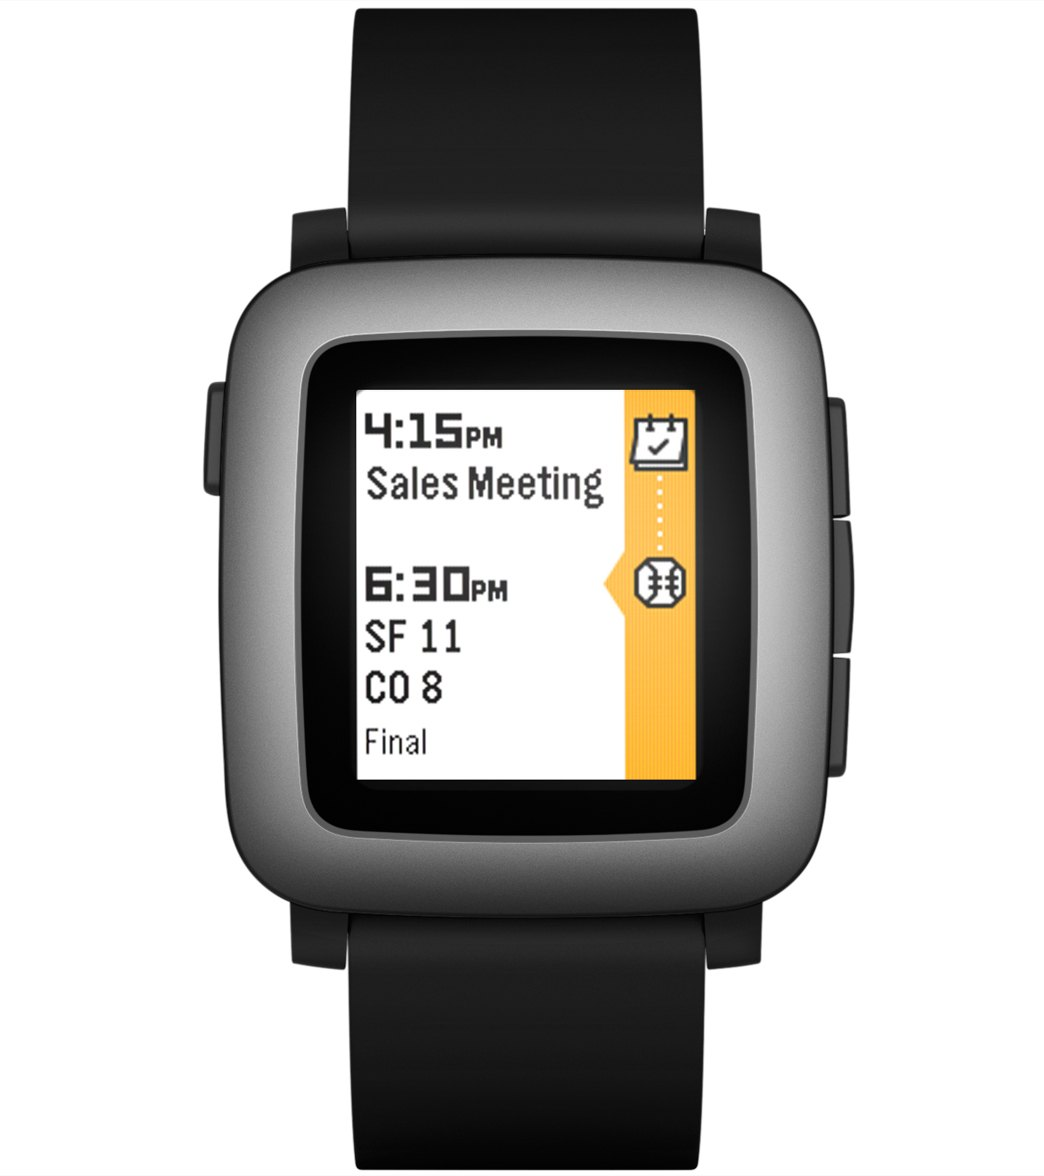 c75e474e61e6 Pebble Time Waterproof Smart Watch with Automatic Lap Counter at SwimOutlet. com - Free Shipping